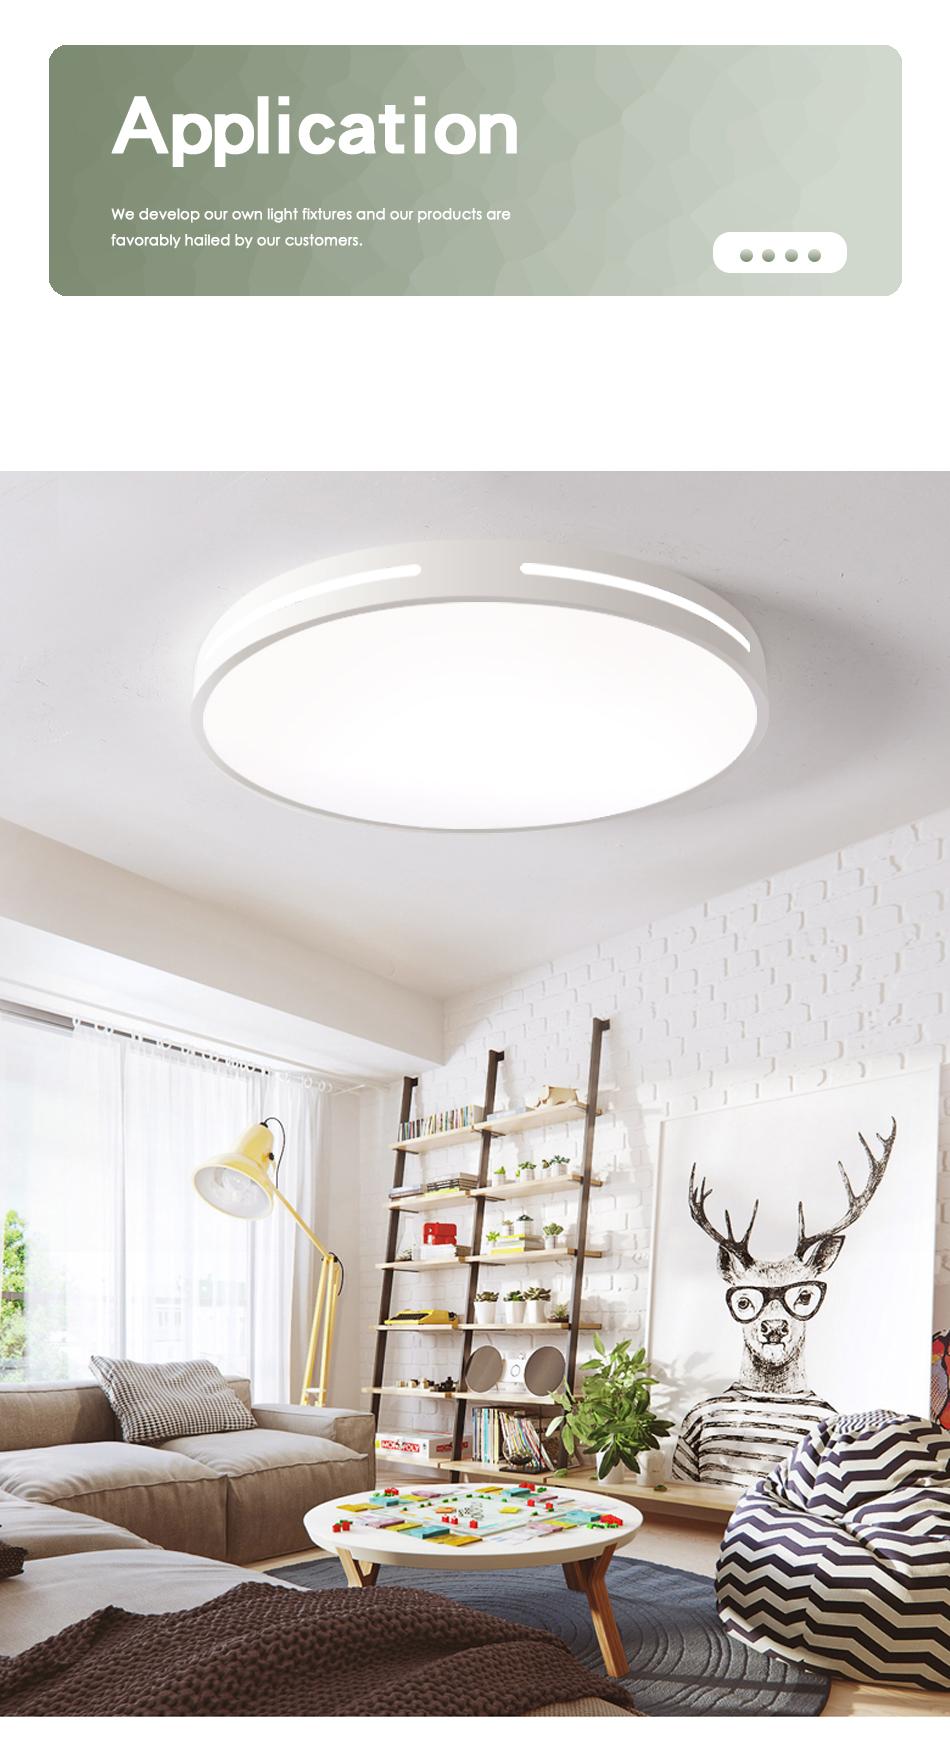 HTB1dnMUXHj1gK0jSZFuq6ArHpXaU Modern LED Ceiling Light Lamp Lighting Fixture Surface Mount Flush Remote Control Dimmable 18W 48W Living Room Bedroom Balcony